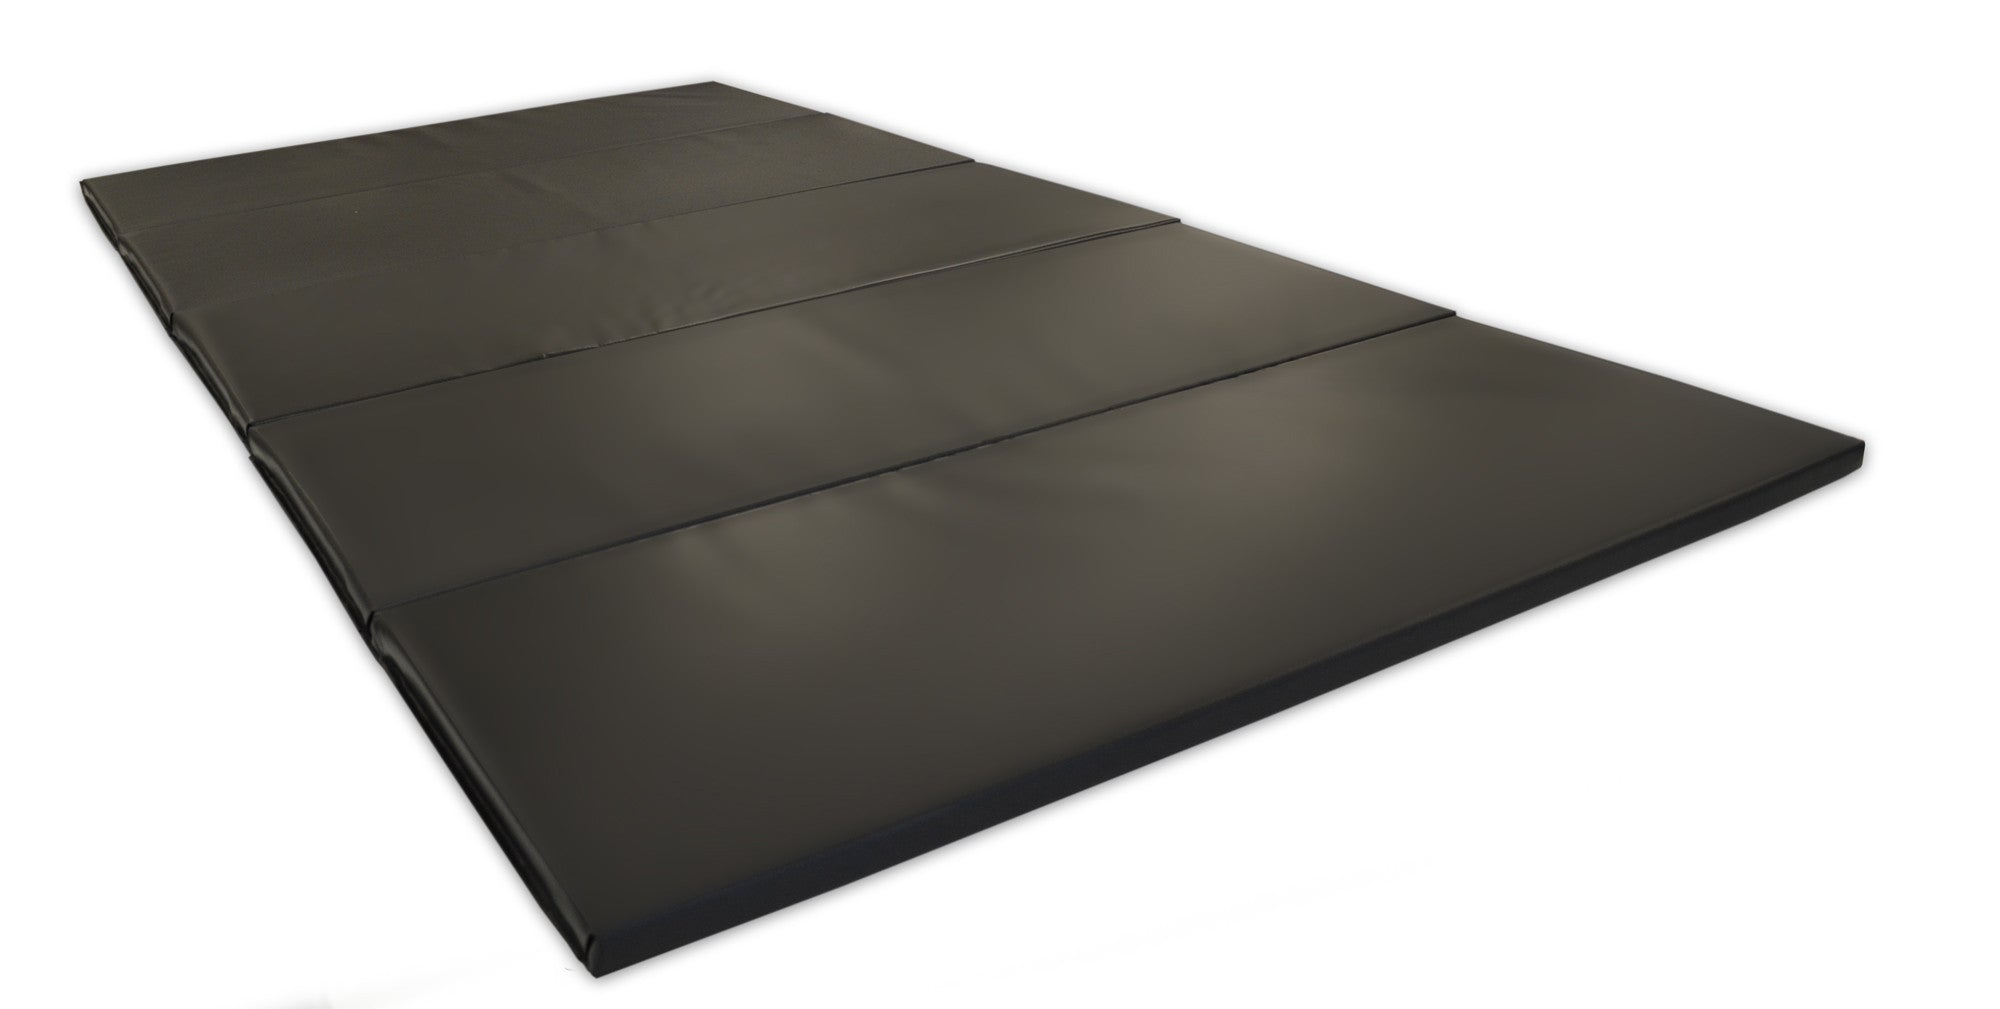 "5' x 10' x 1 3/8"" Advanced Level Folding Mat"